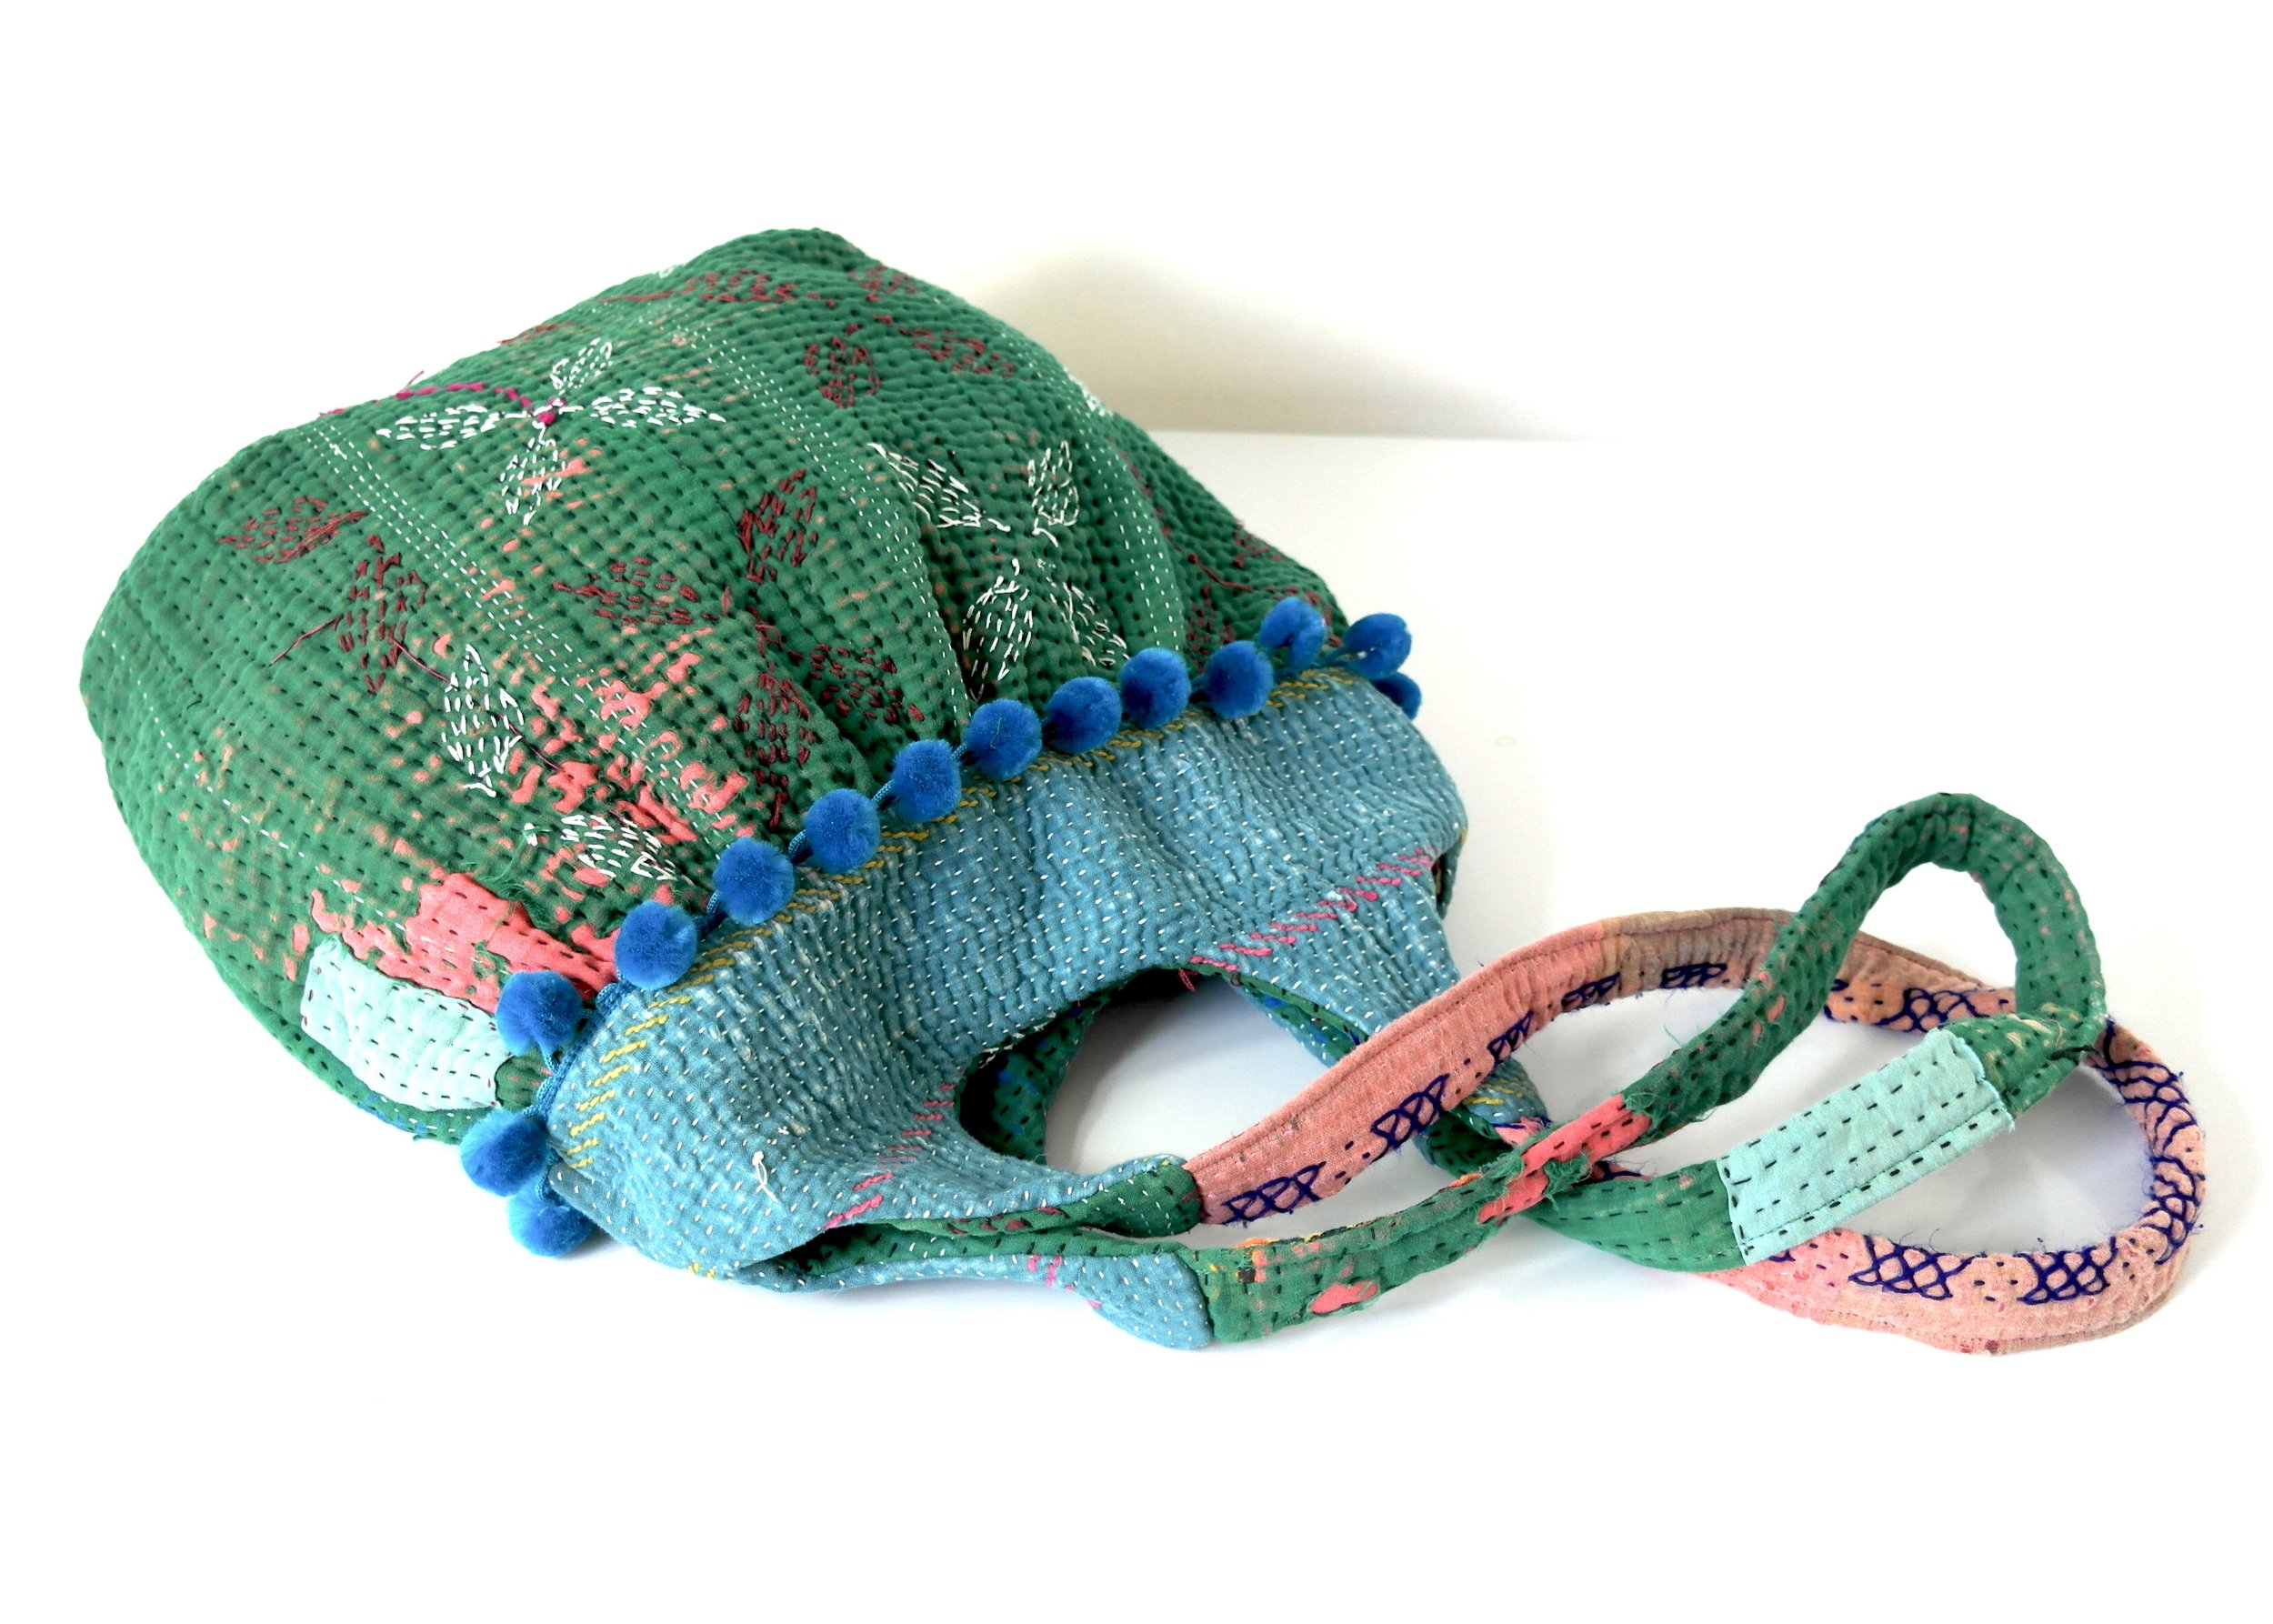 Kantha bag with signs of wear - shabby look!